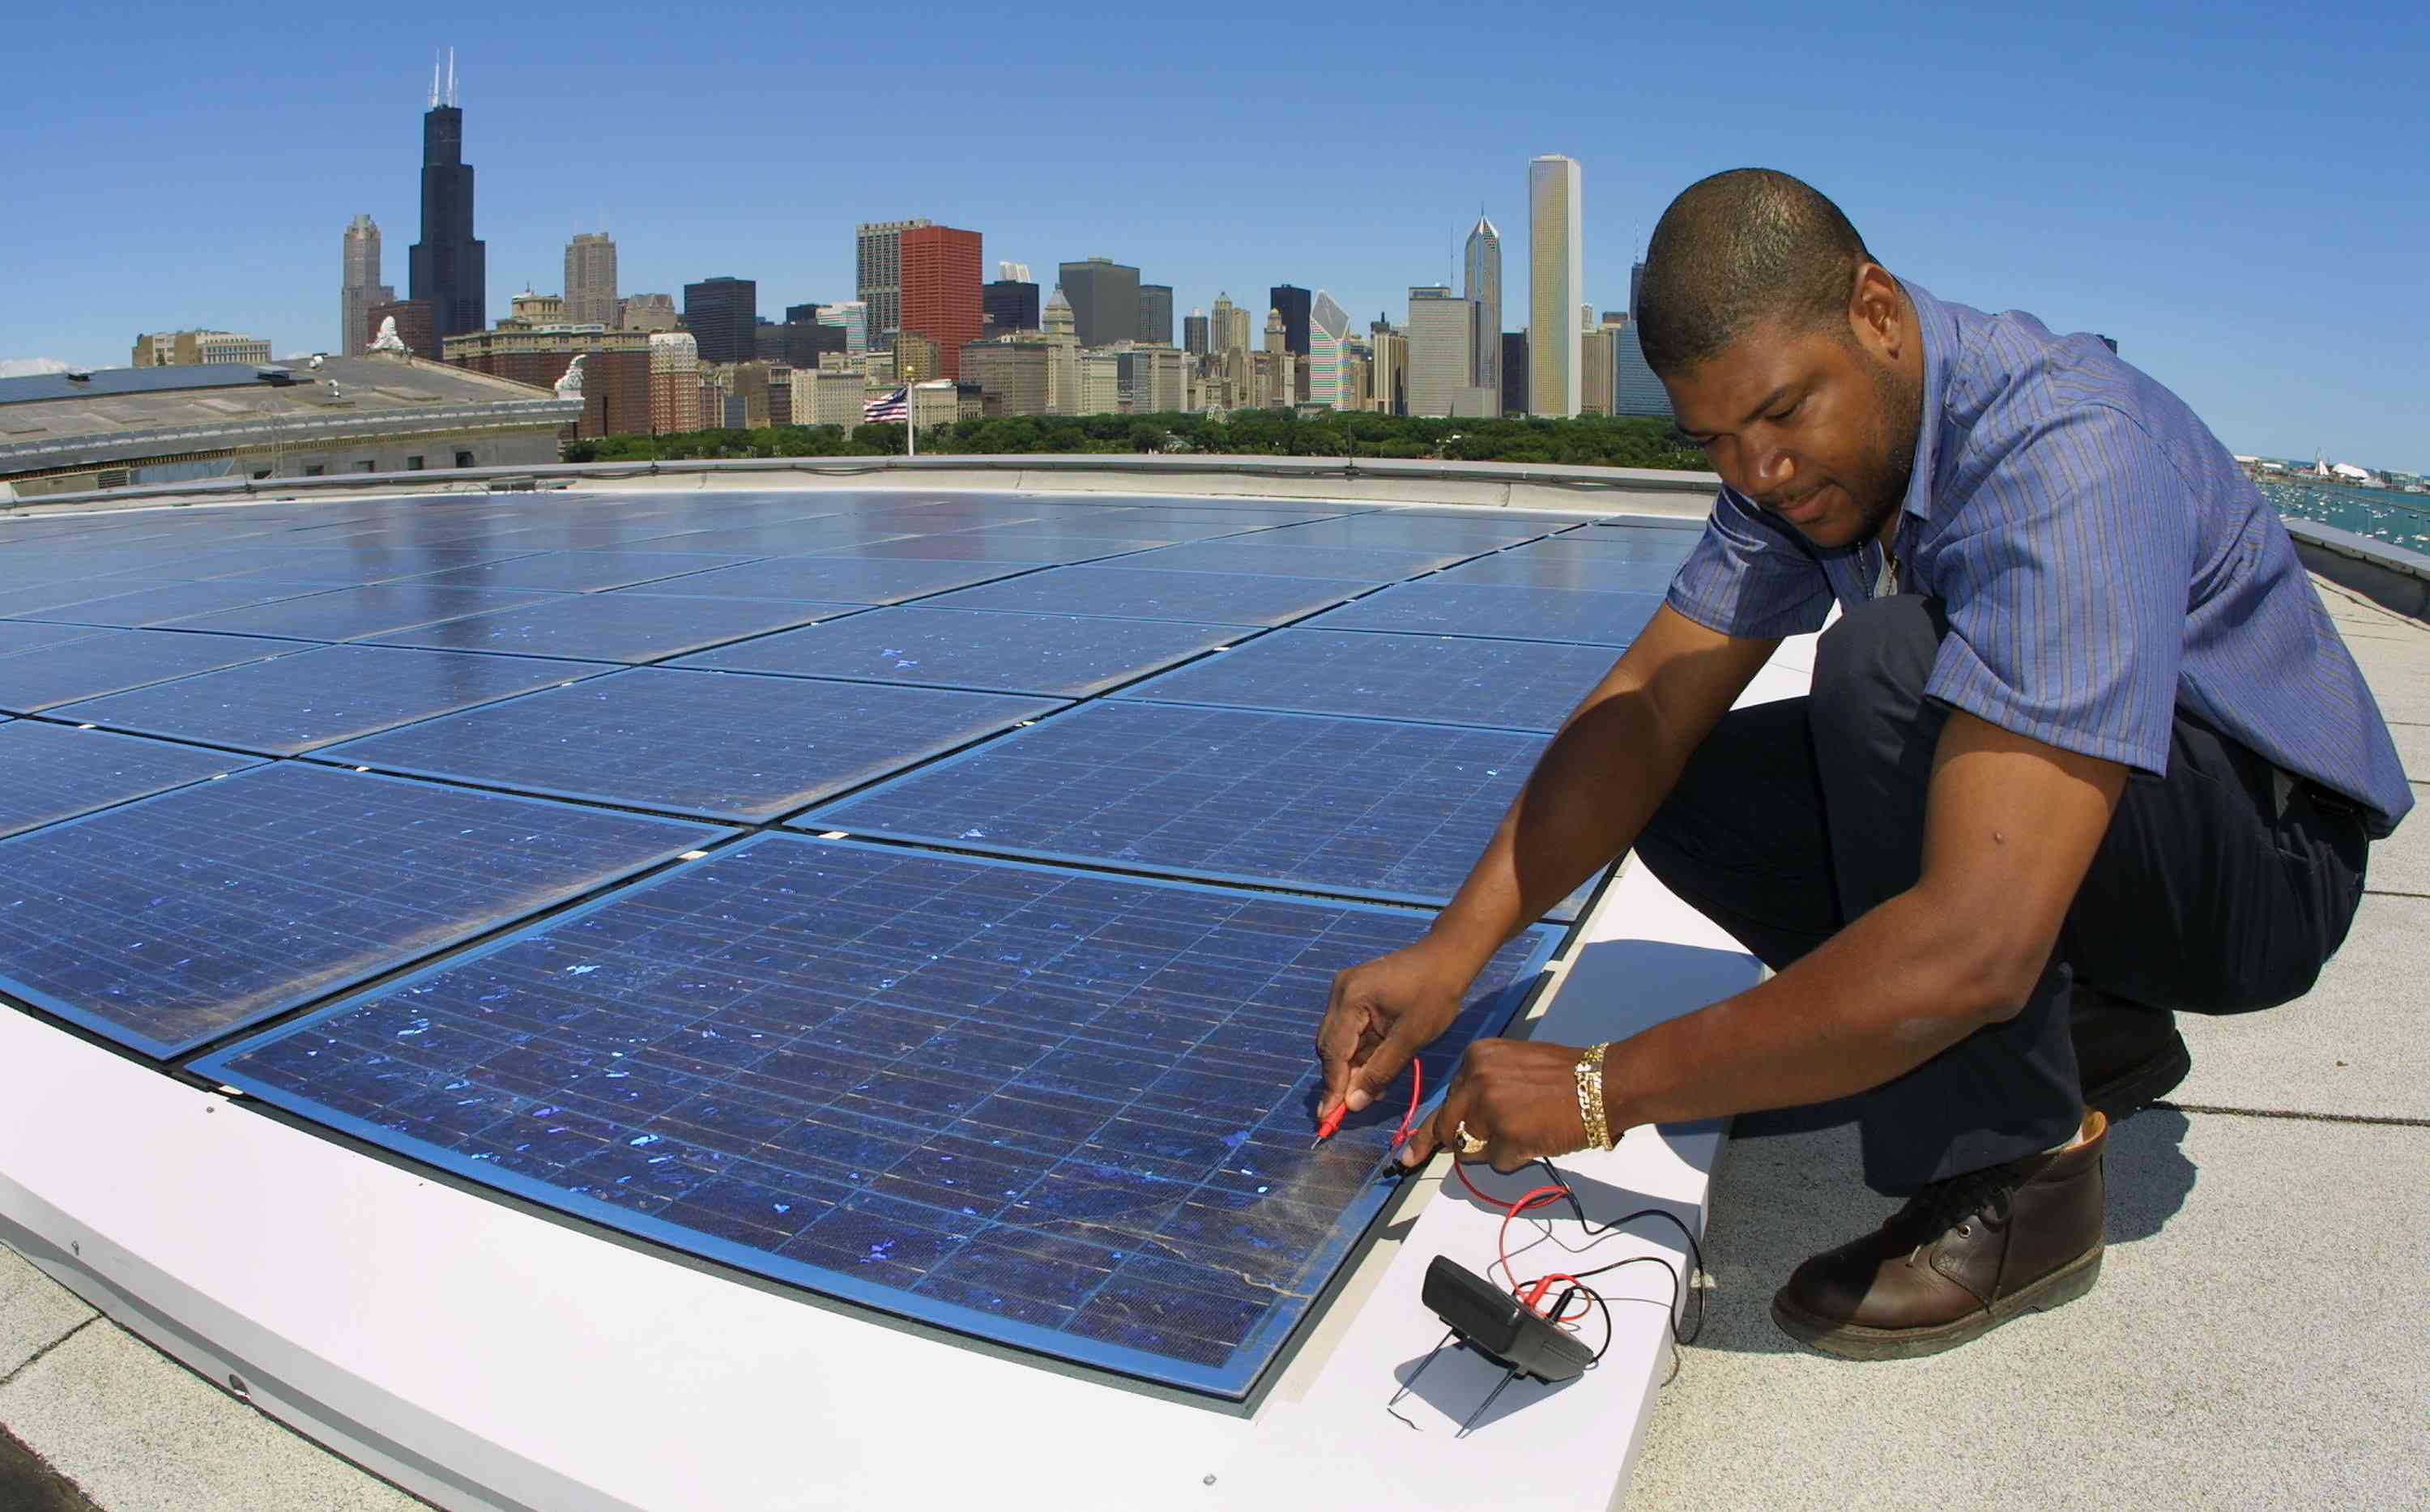 Building engineer Ernst Loubeau performs a diagnostic maintenance procedure July 5, 2001 on the solar electric system located on the roof of the Field Museum of Natural History in Chicago.